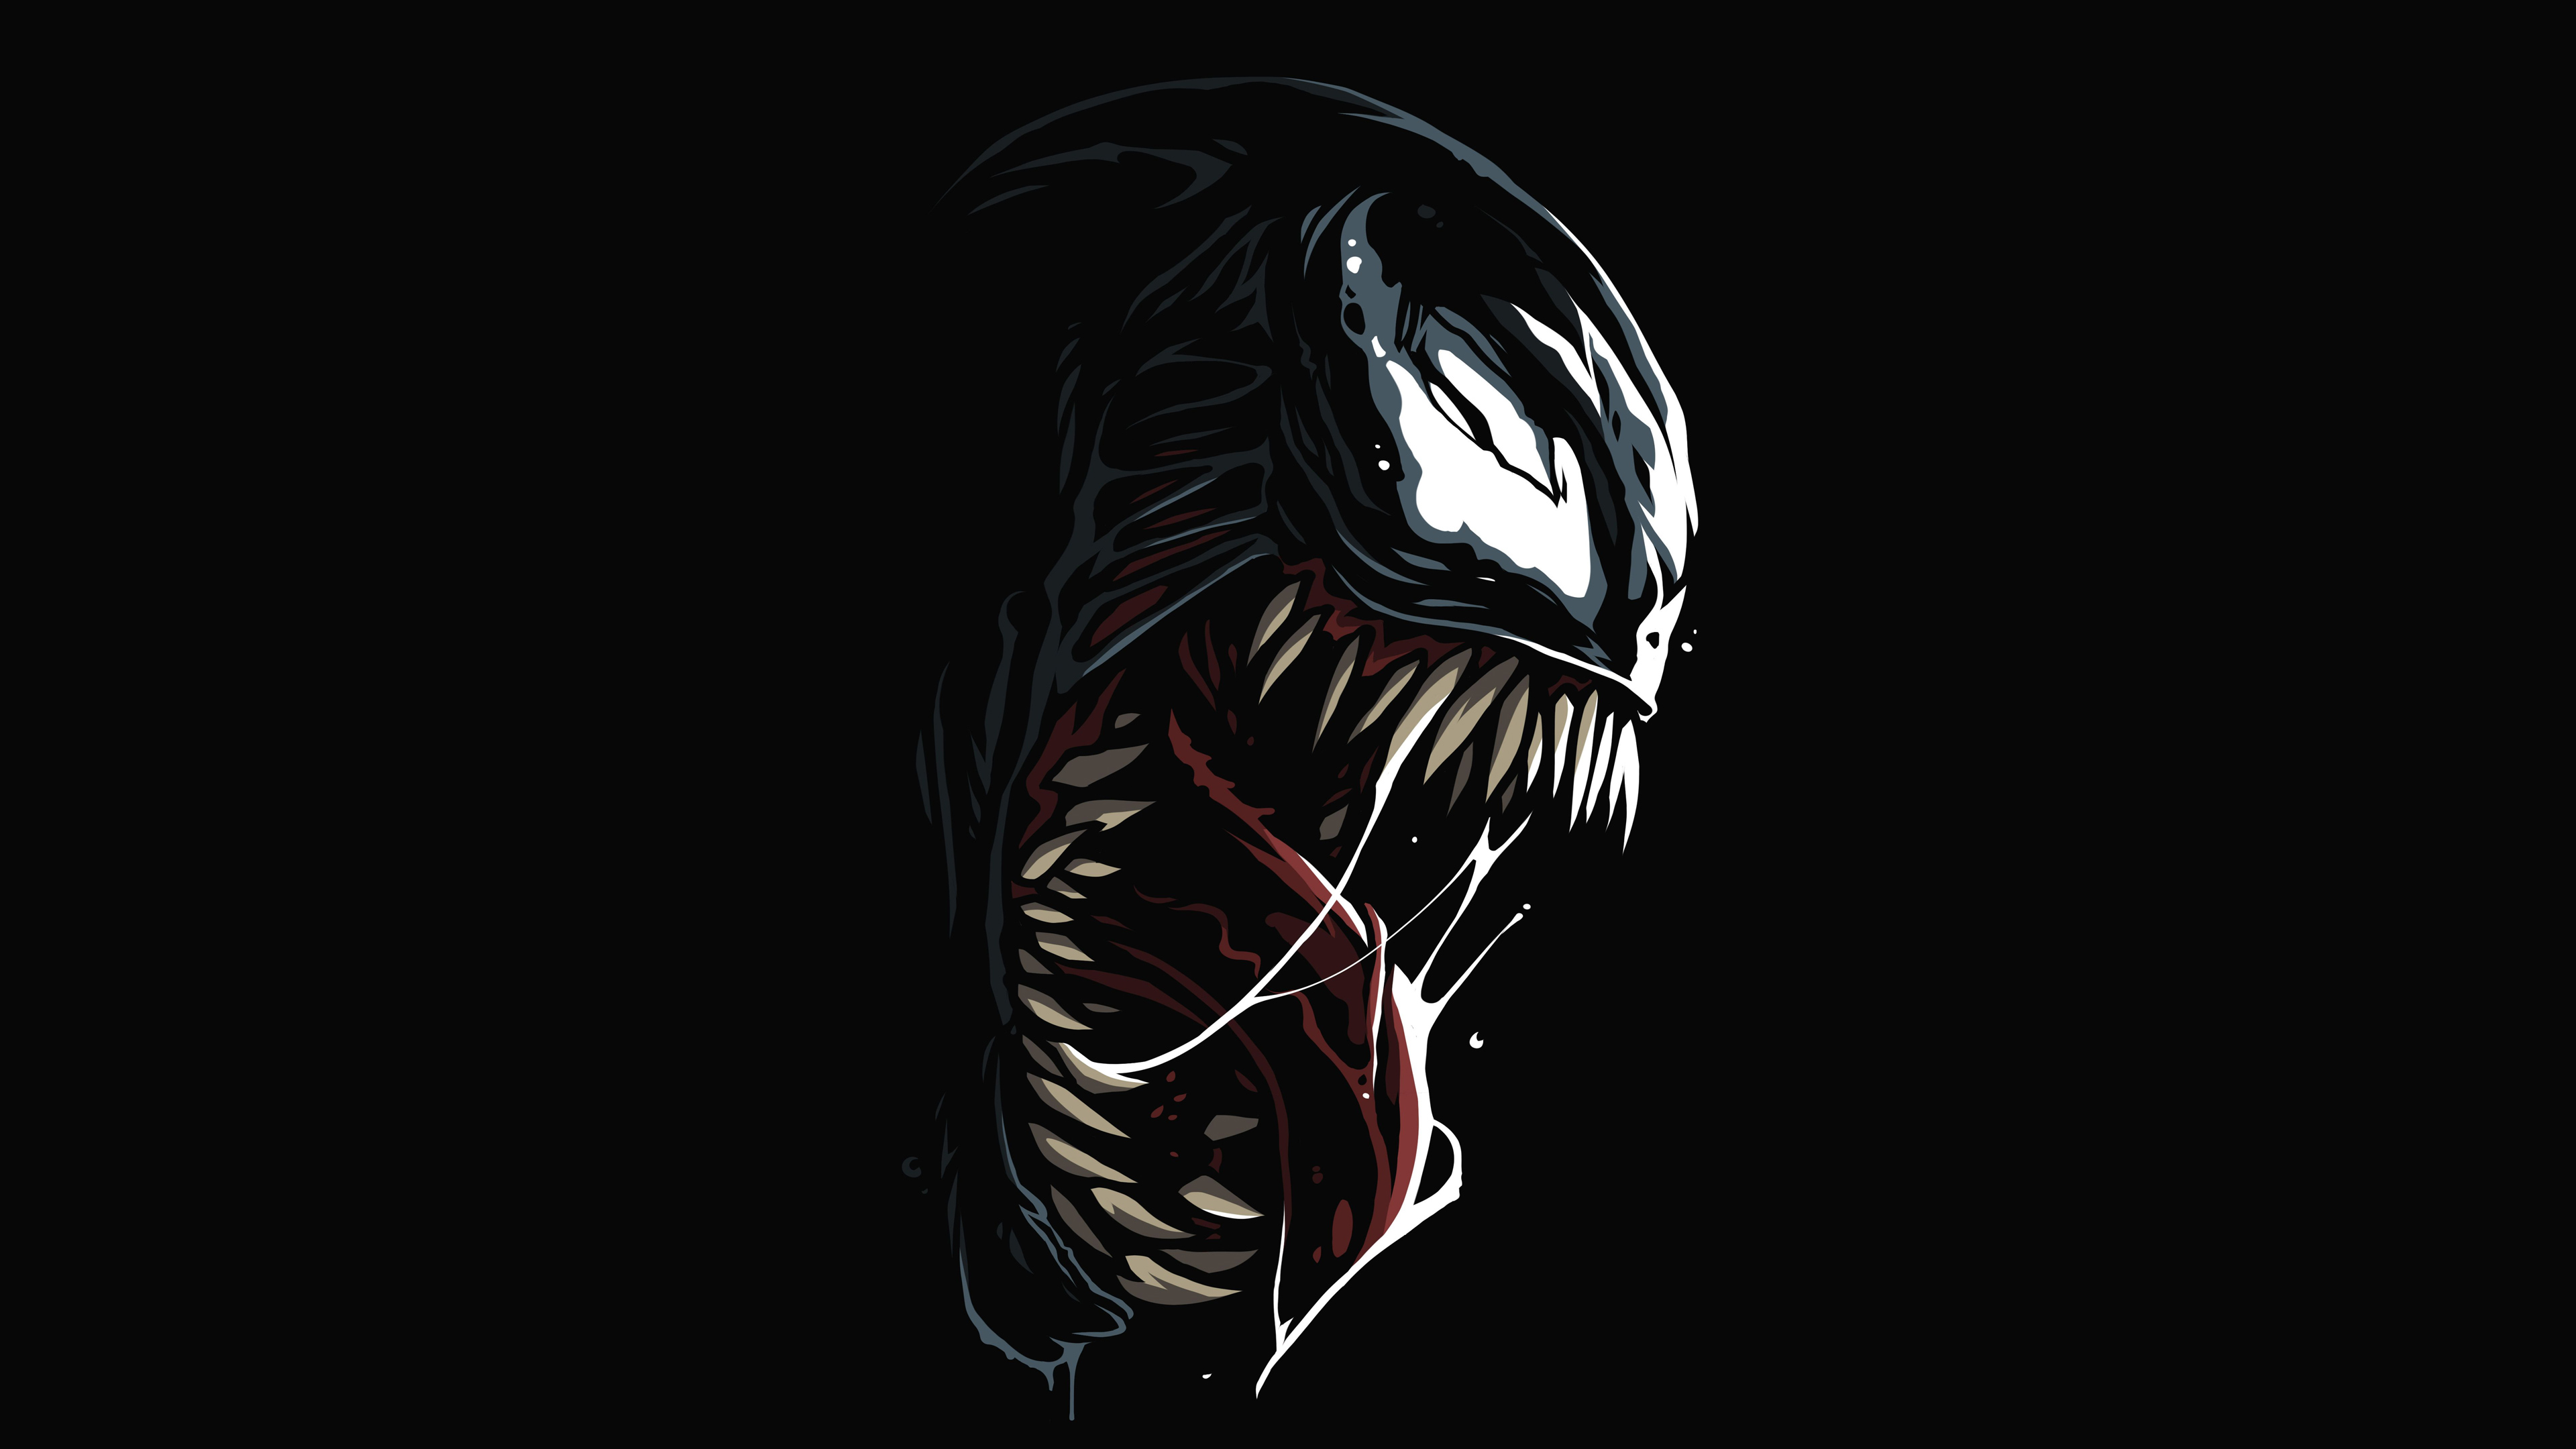 Venom Amoled 4k Hd Superheroes 4k Wallpapers Images